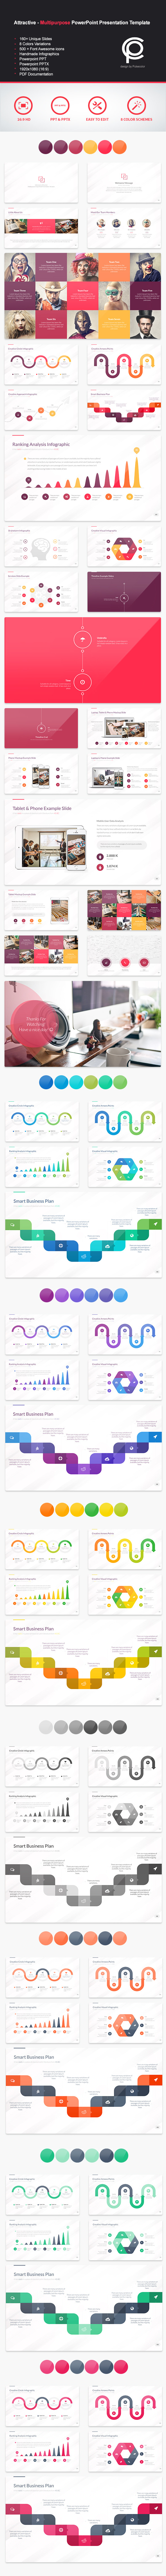 GraphicRiver Attractive Multipurpose PowerPoint Presentation 11778342